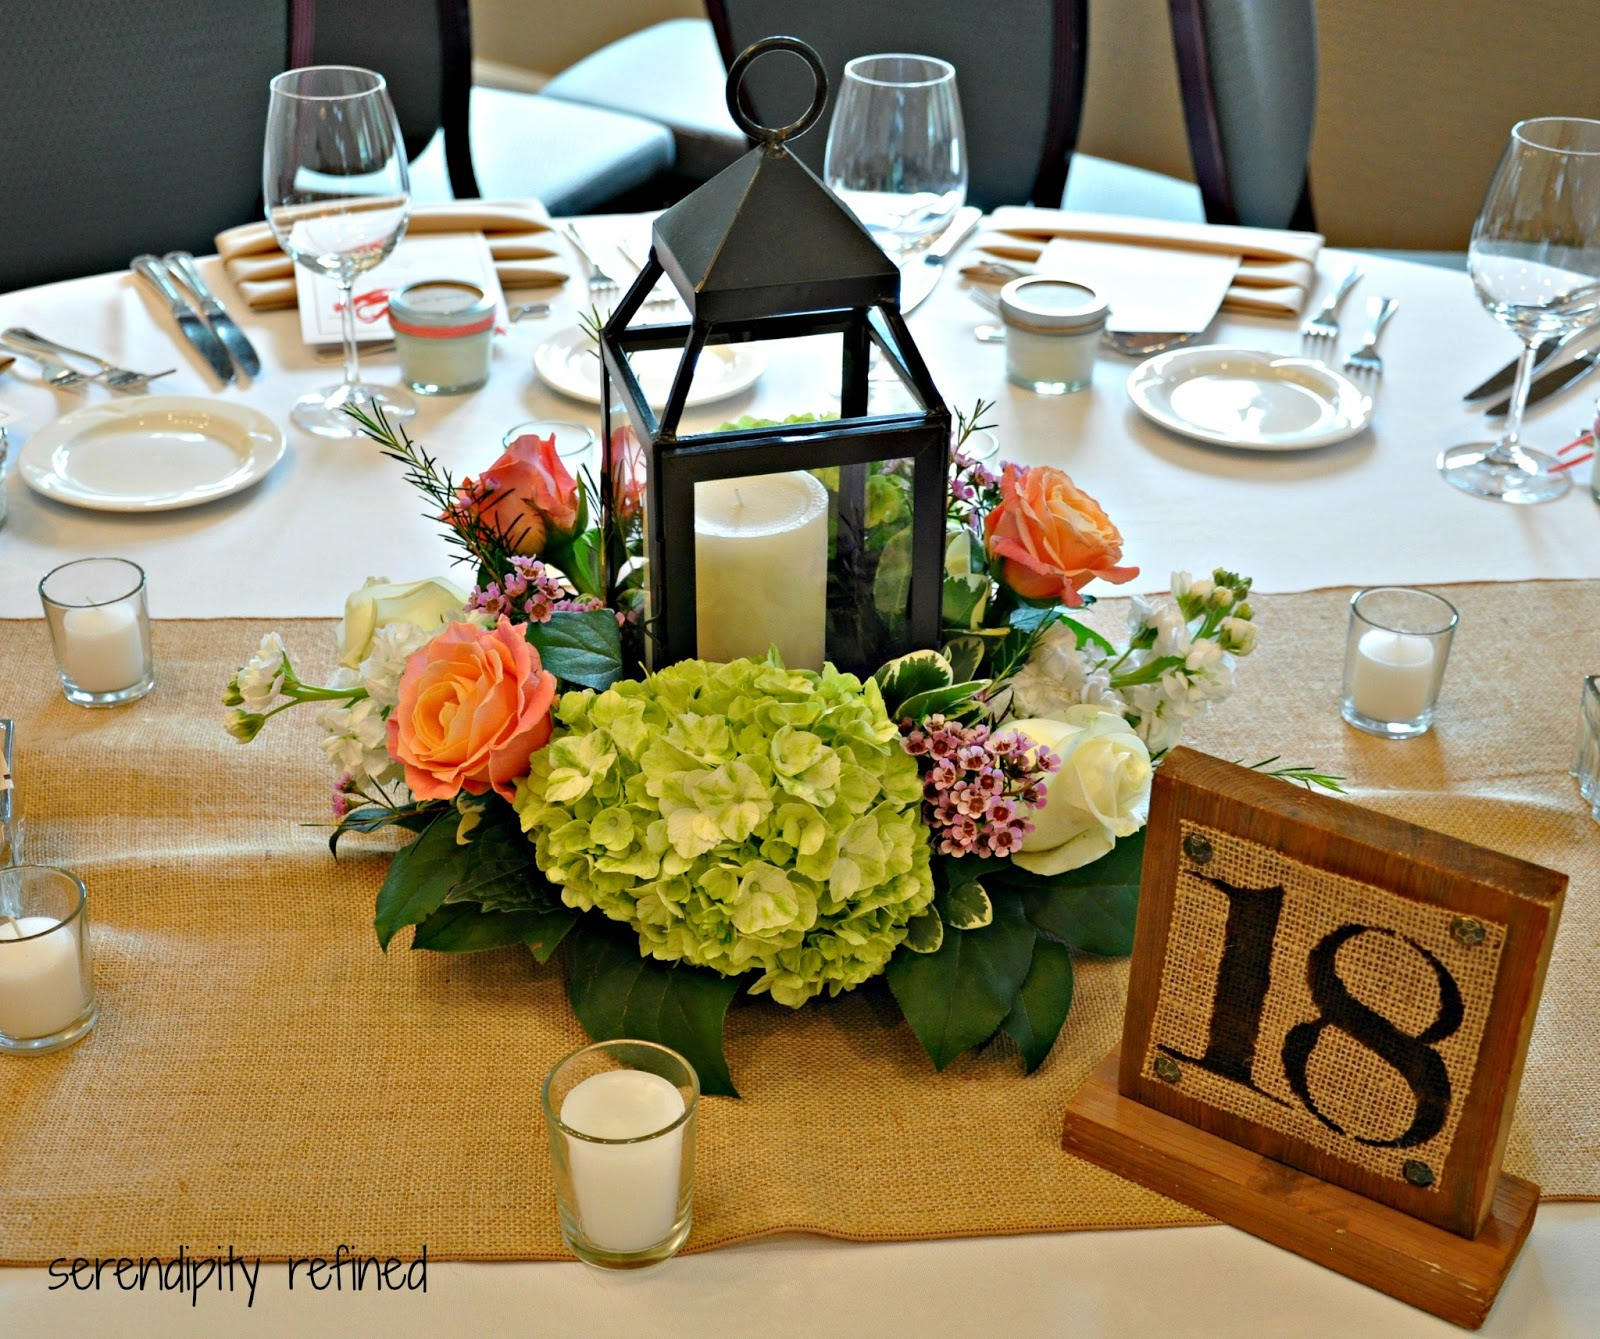 Serendipity Refined Blog: Wonderful Saturday Wedding